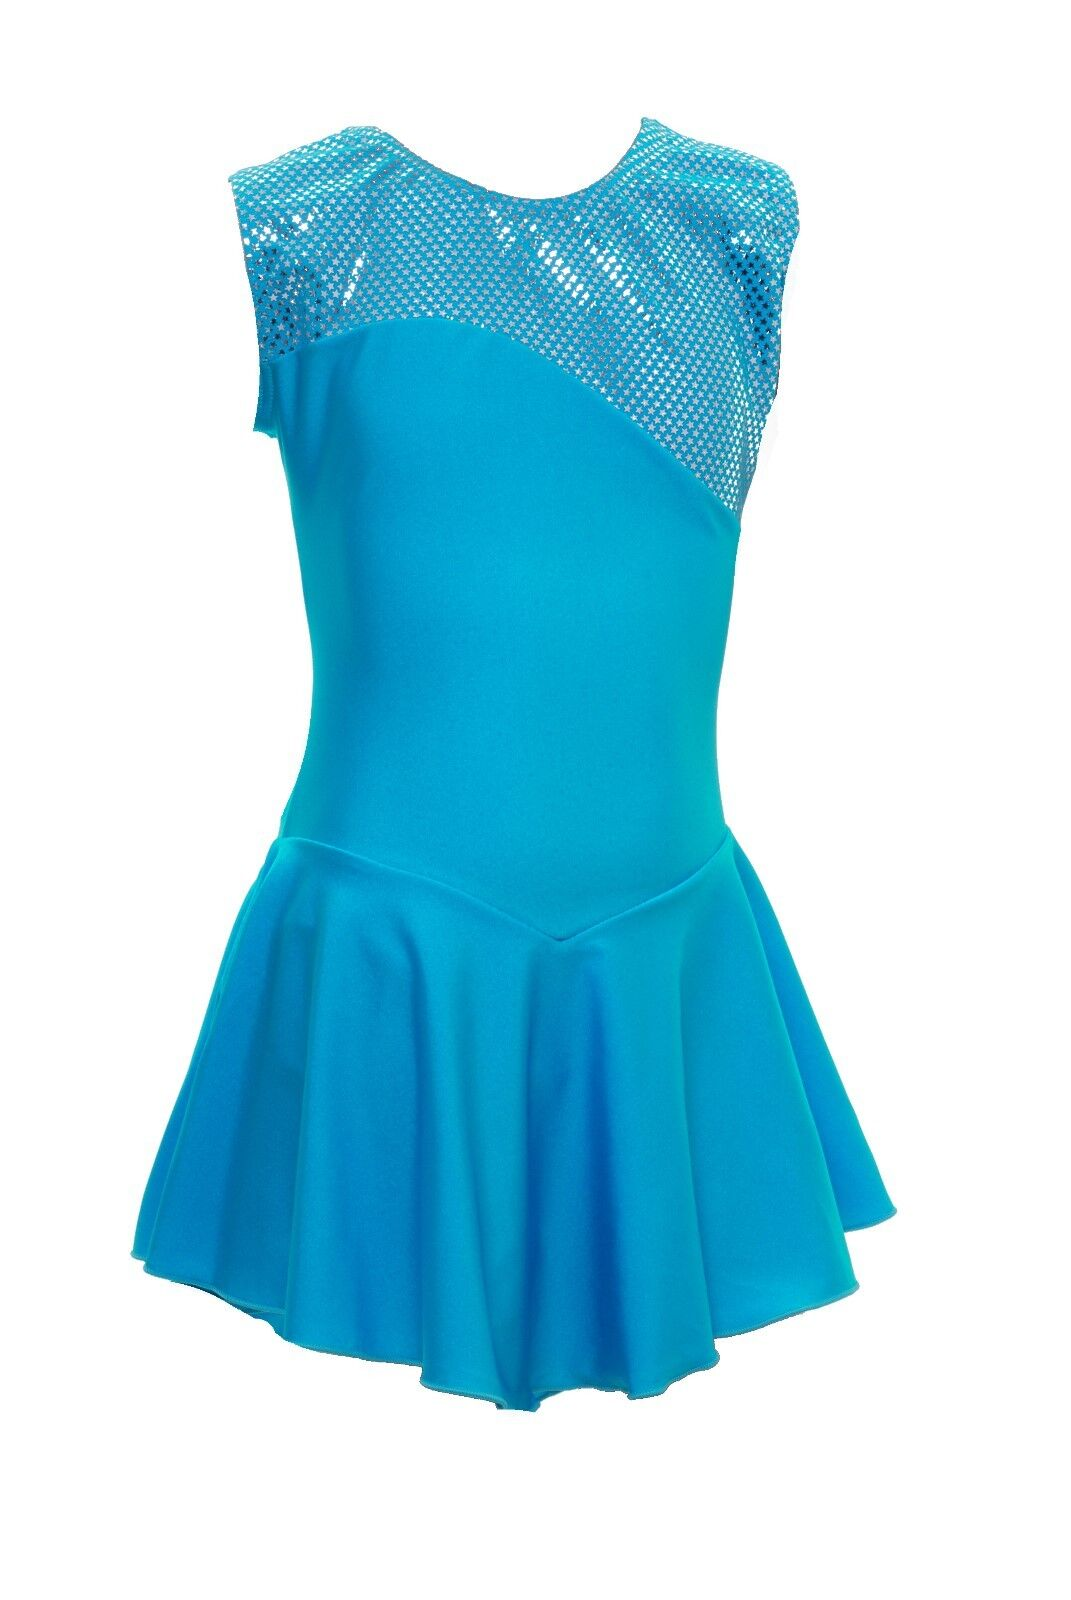 Skating Dress -KINGFISHER LYCRA   Metalic top NO SLEEVE ALL SIZES AVAILABLE